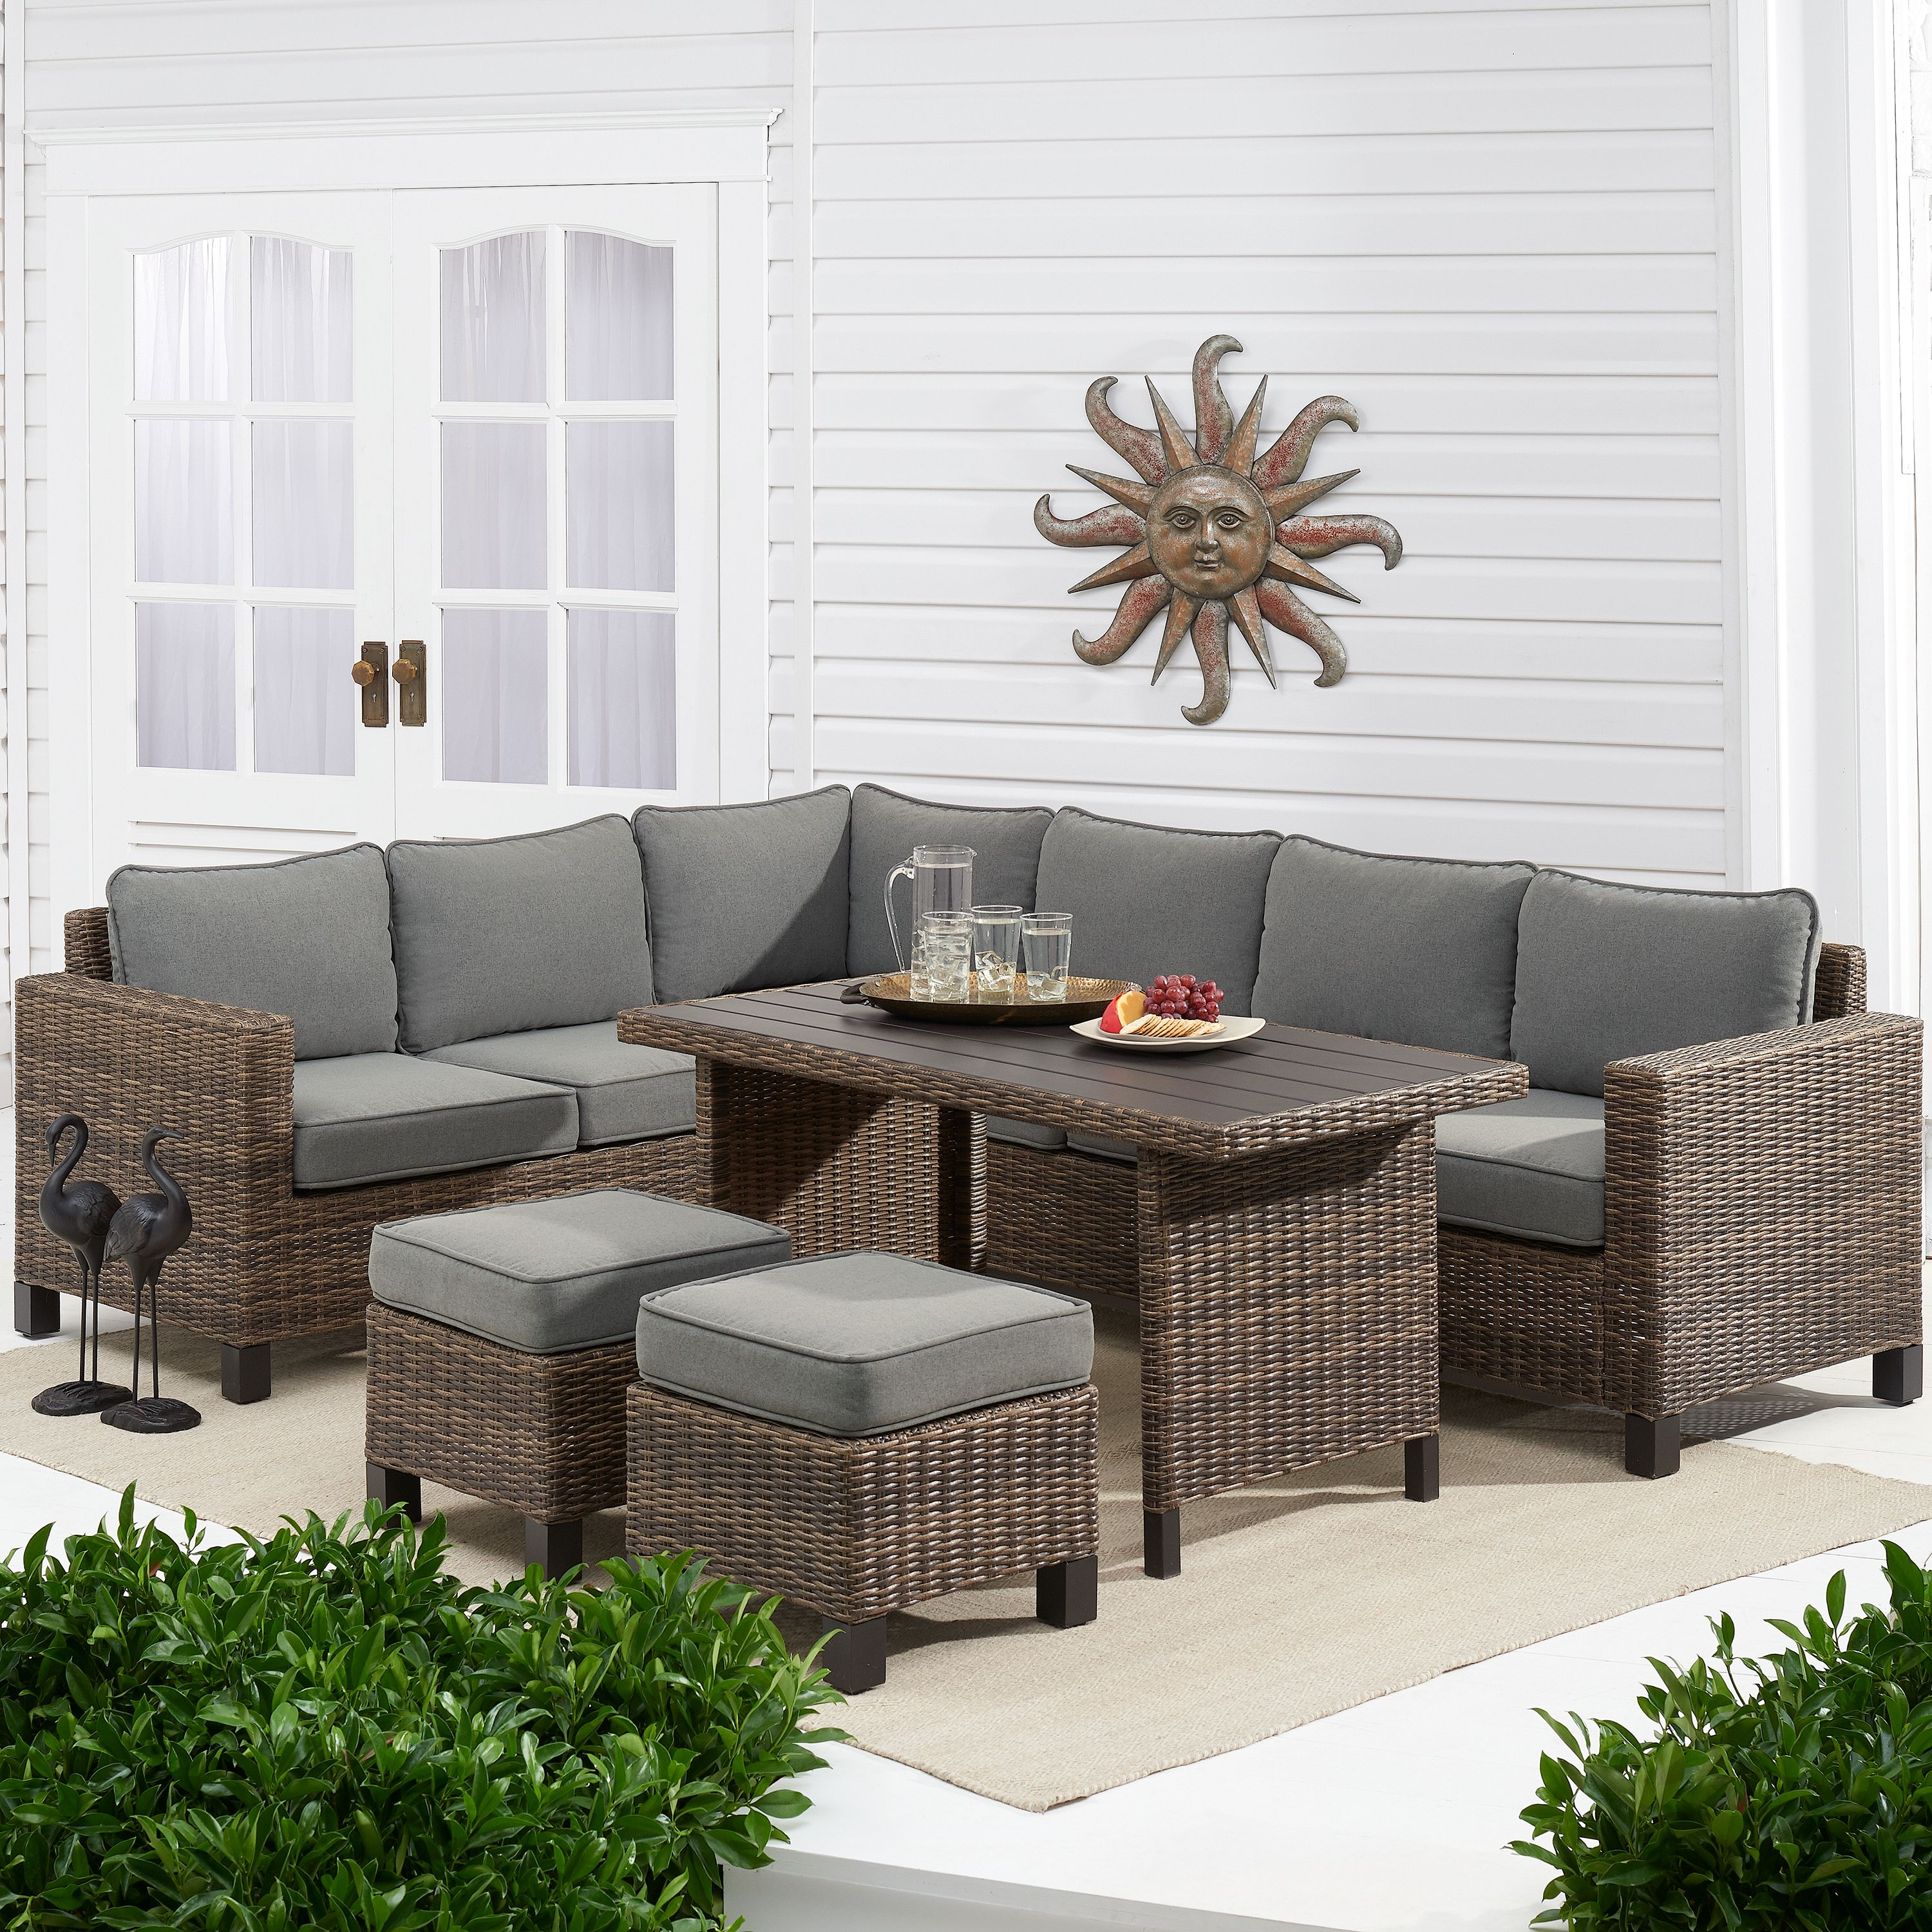 71379ba2b8d9ca36f3443a34849cfb95 - Better Homes And Gardens Furniture Canada